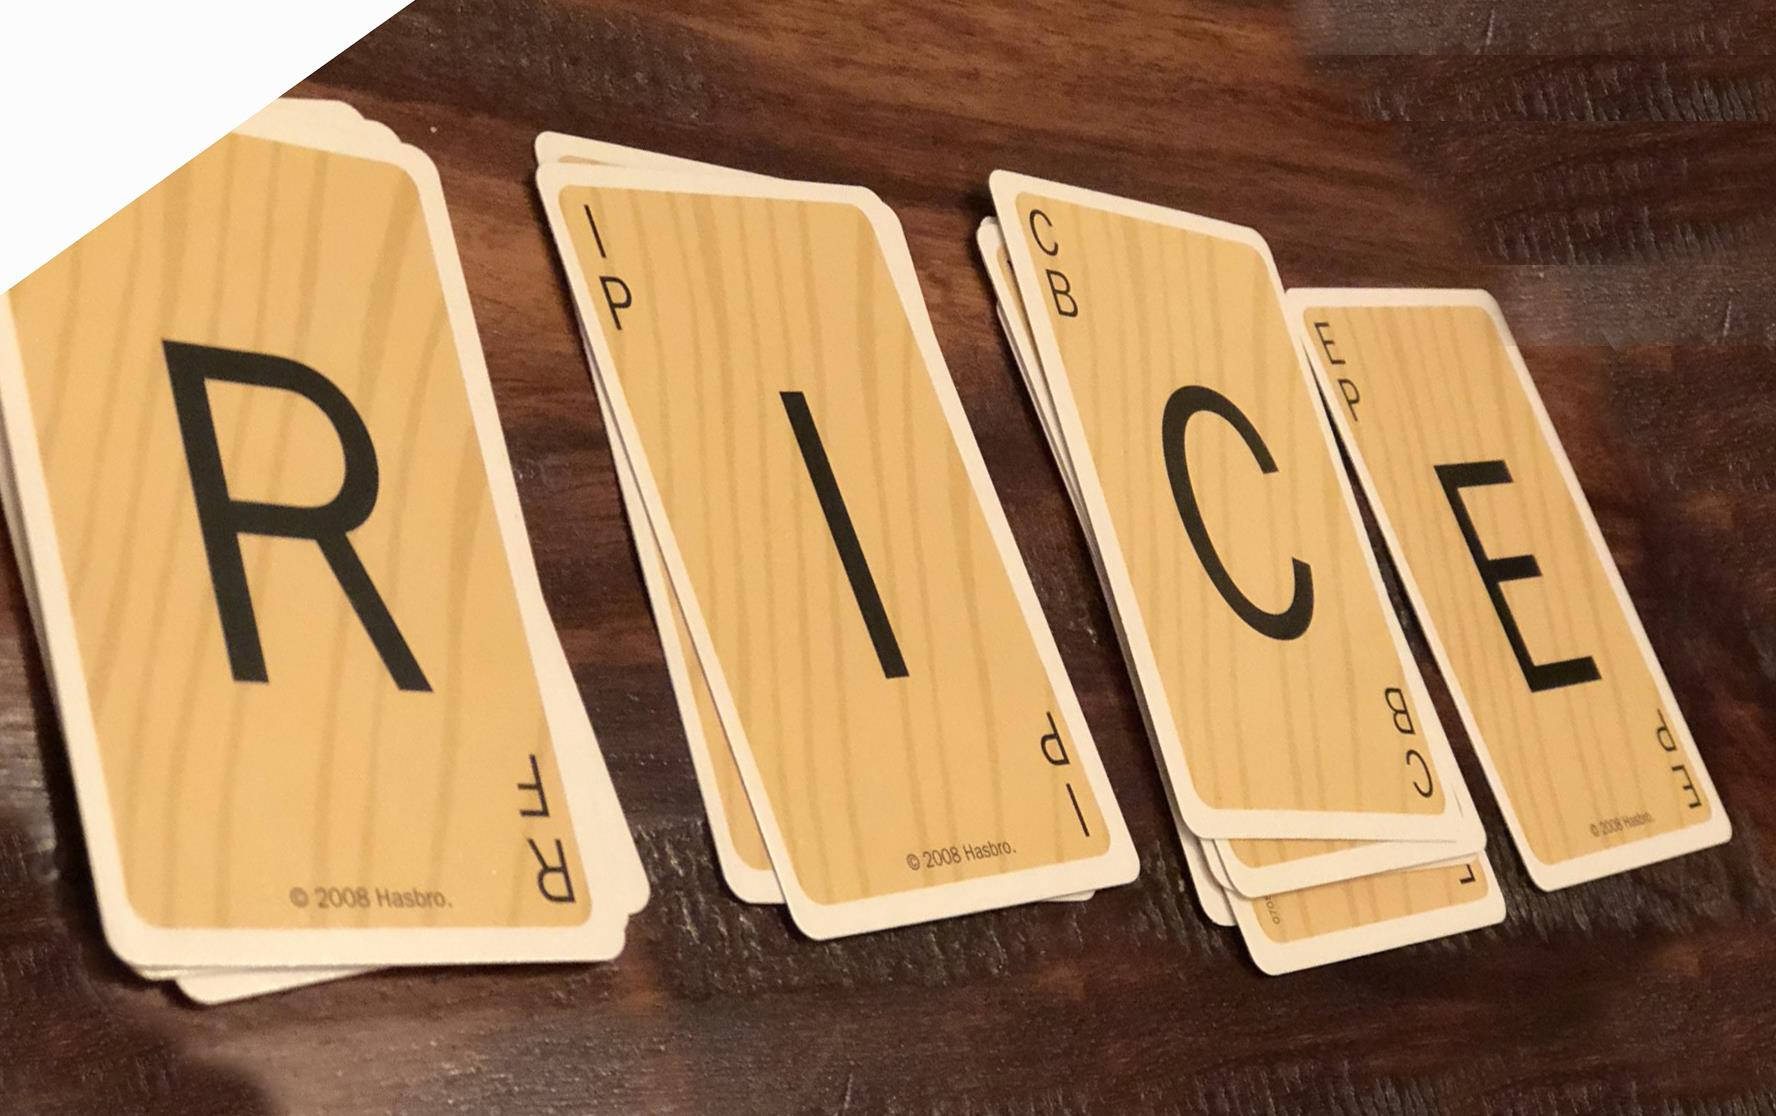 Playing cards spell out R-I-C-E